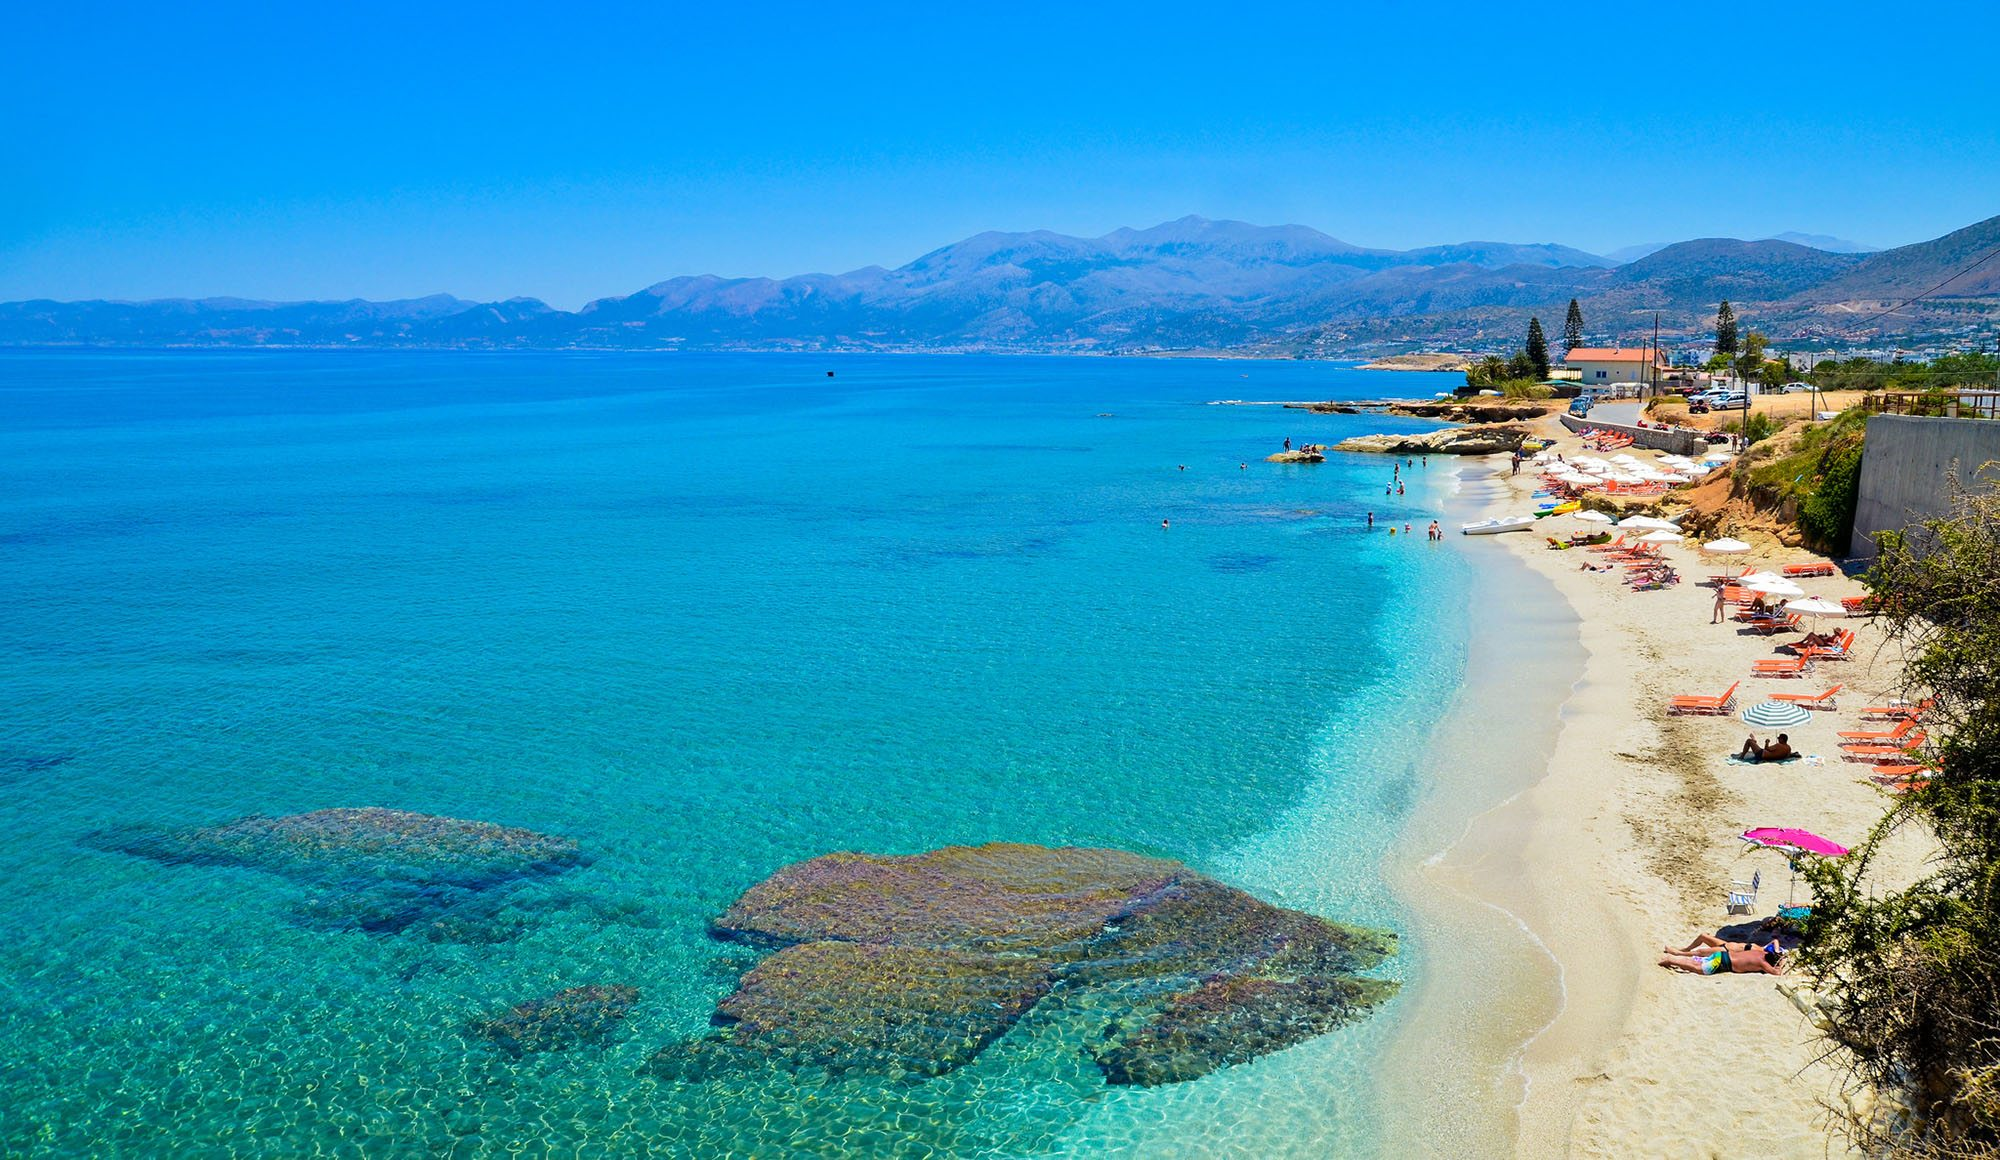 Holiday Travel Guide To The Resort Of Gournes In Crete